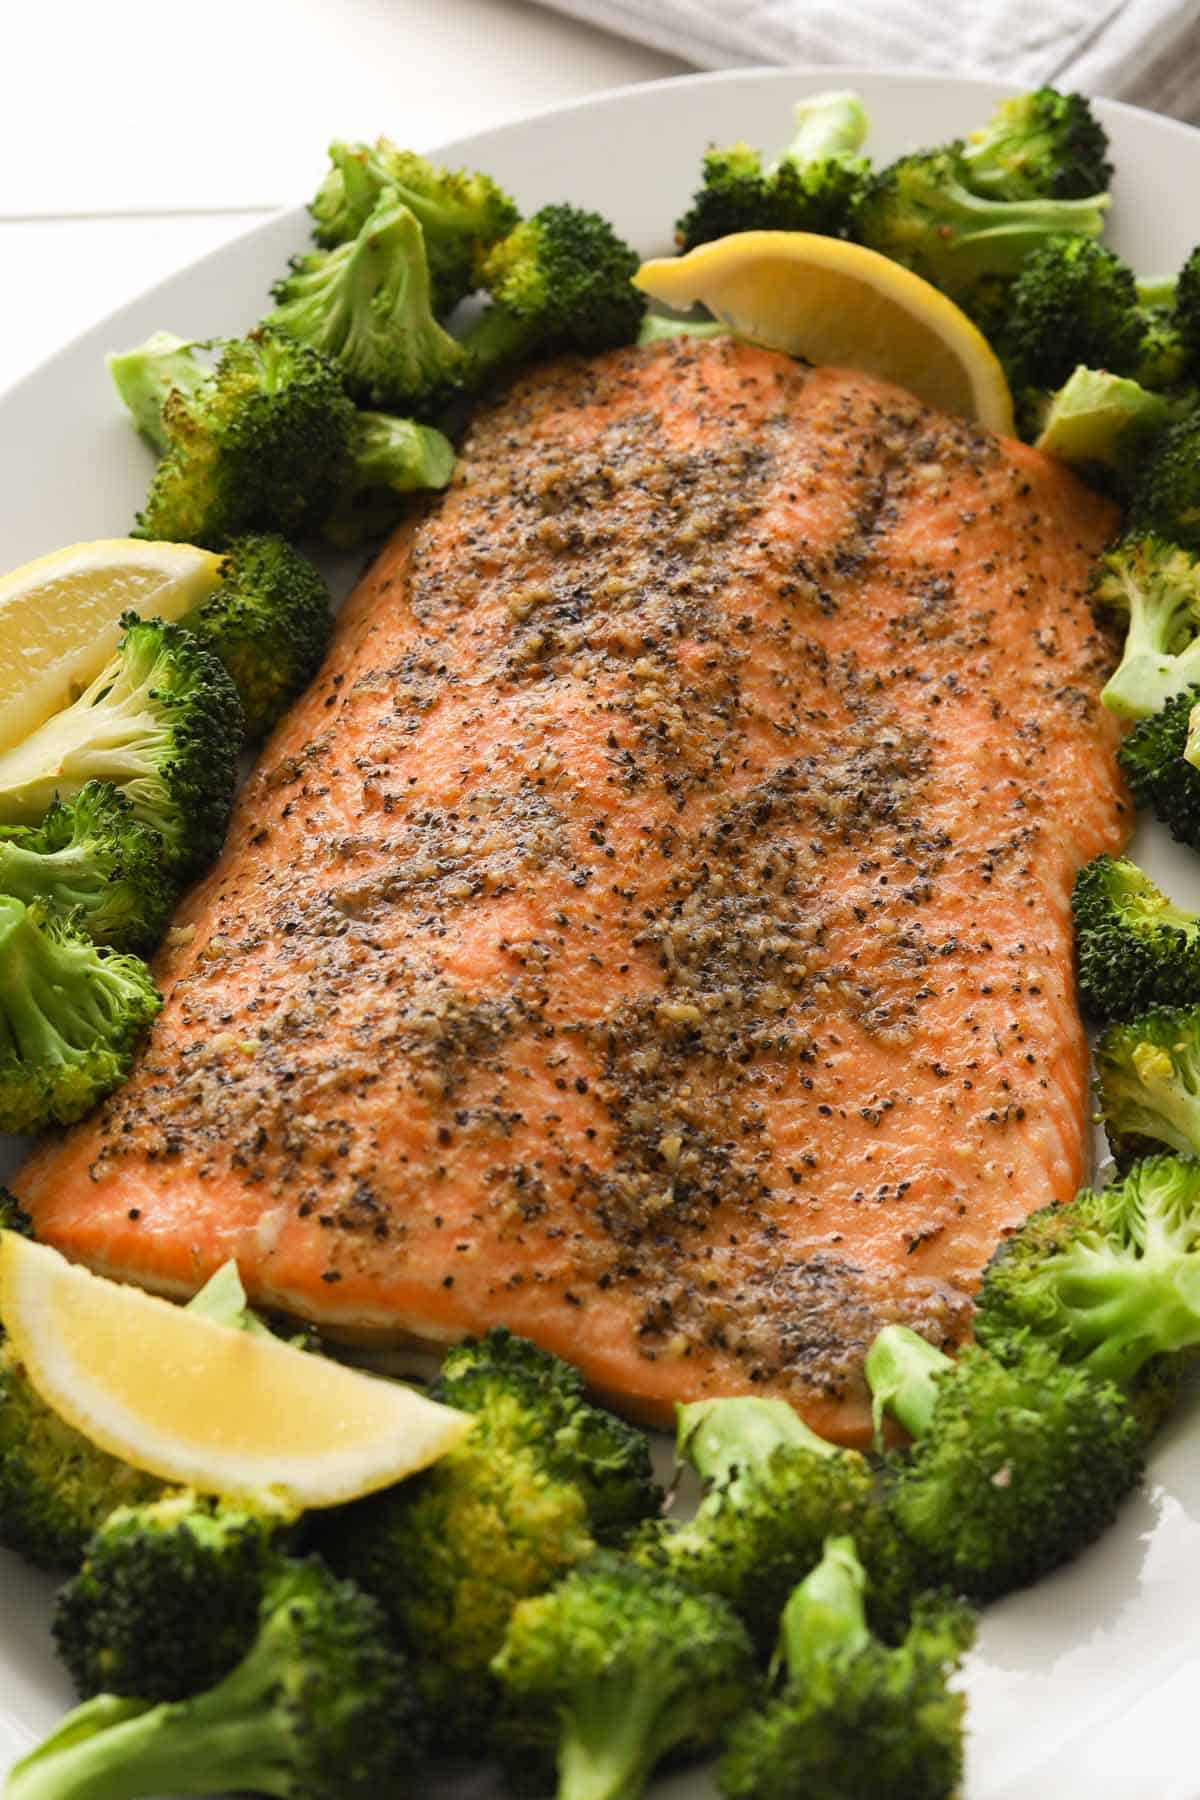 Cooked salmon fillet with broccoli florets and lemon wedges on a plate.